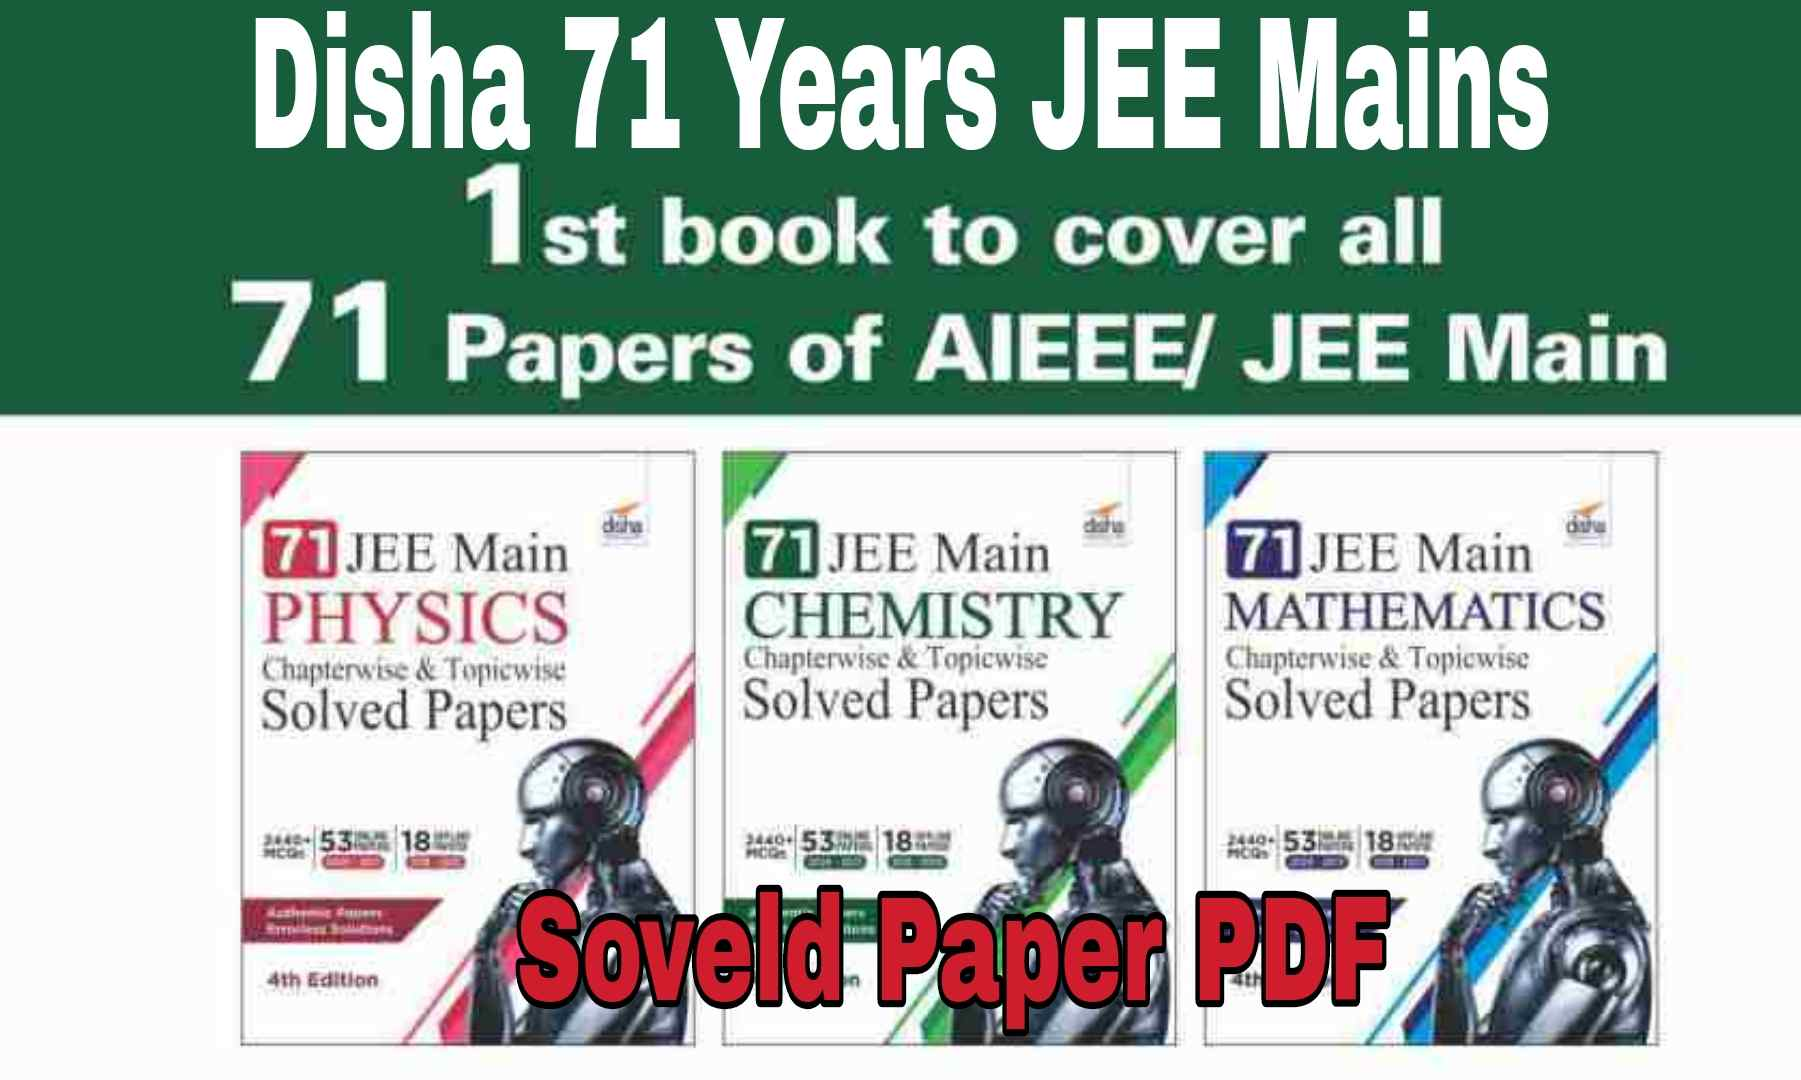 Disha 71 Years JEE Main Solved paper PDF